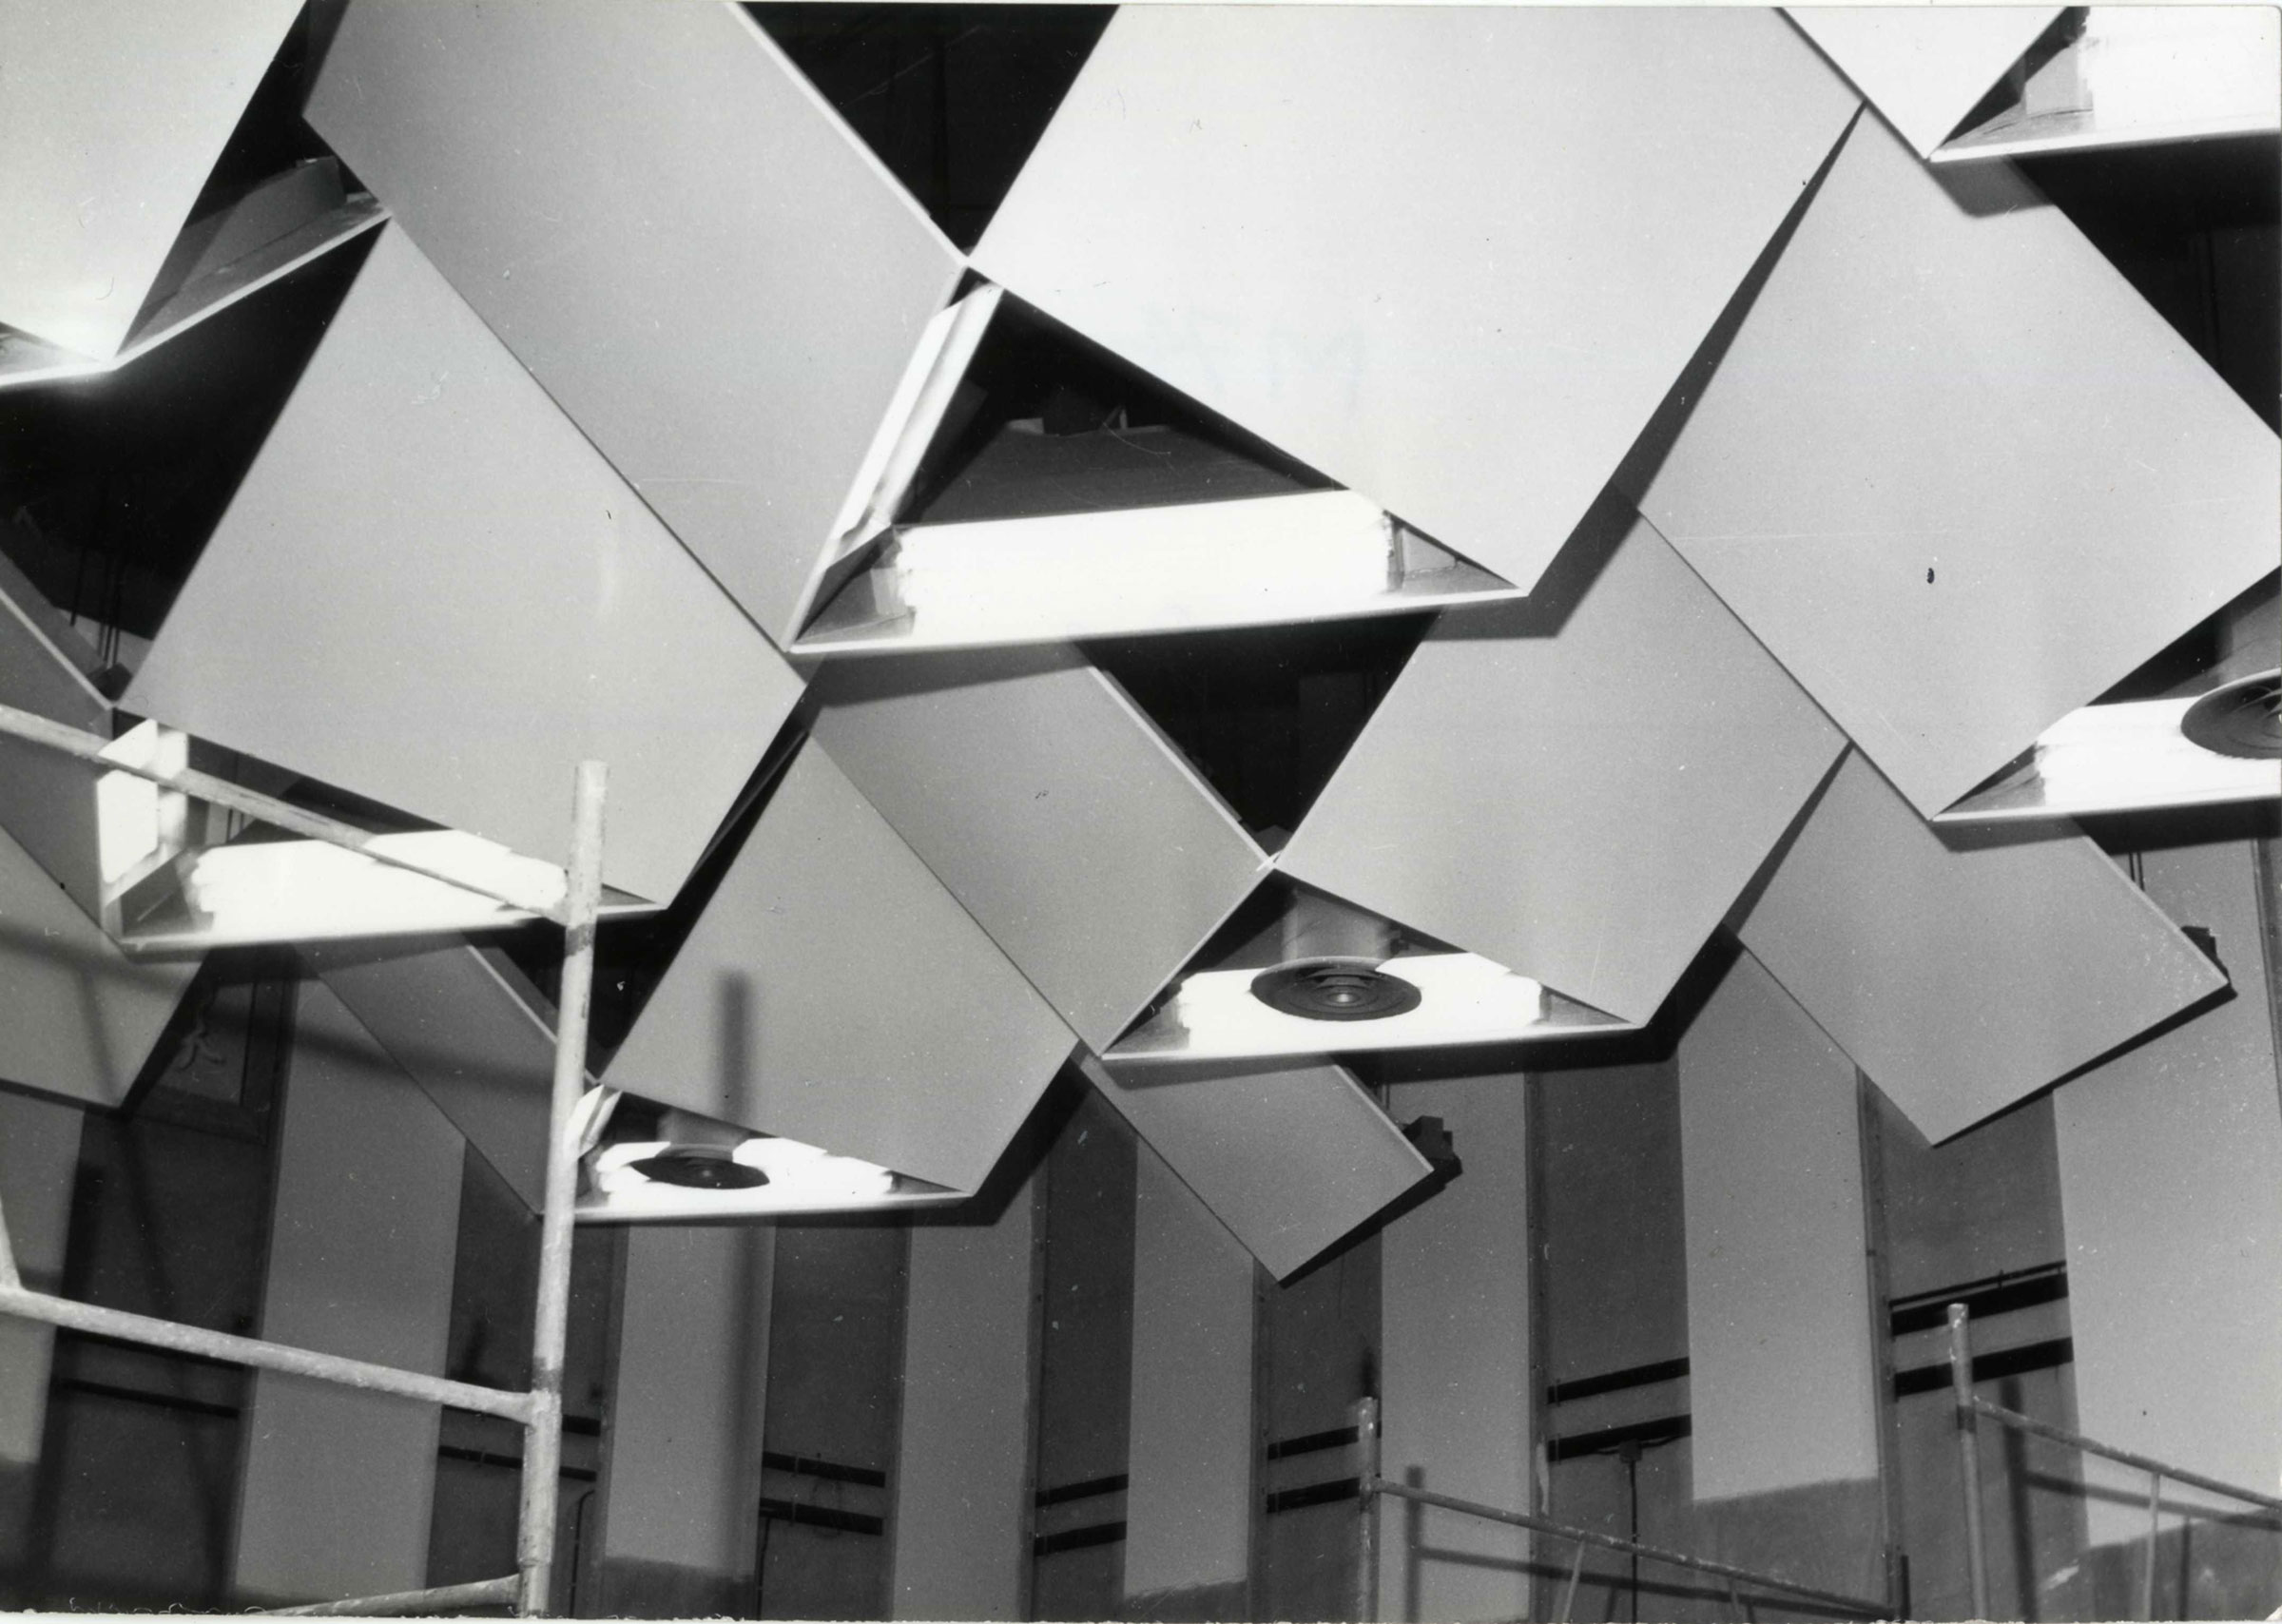 Photo du plafond acoustique du studio 107 de la Maison de la Radio, 1963 / Archives écrites de Radio France